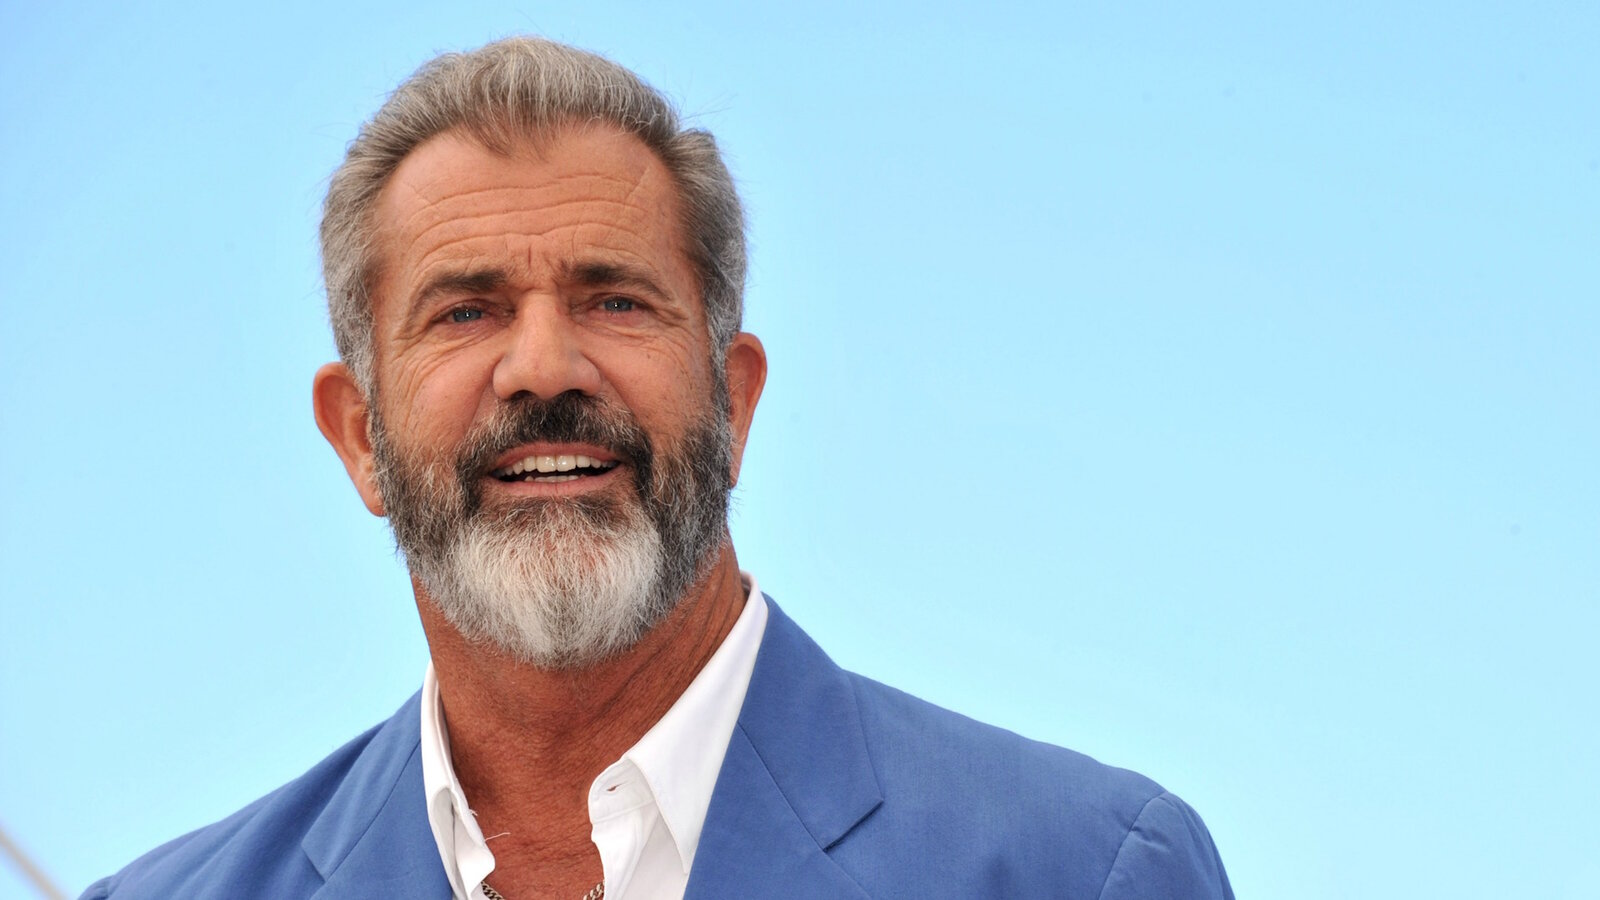 Look, we understand how good  'Braveheart' and 'The Passion of the Christ'. But Mel Gibson is not a good person, so stop watching his movies.